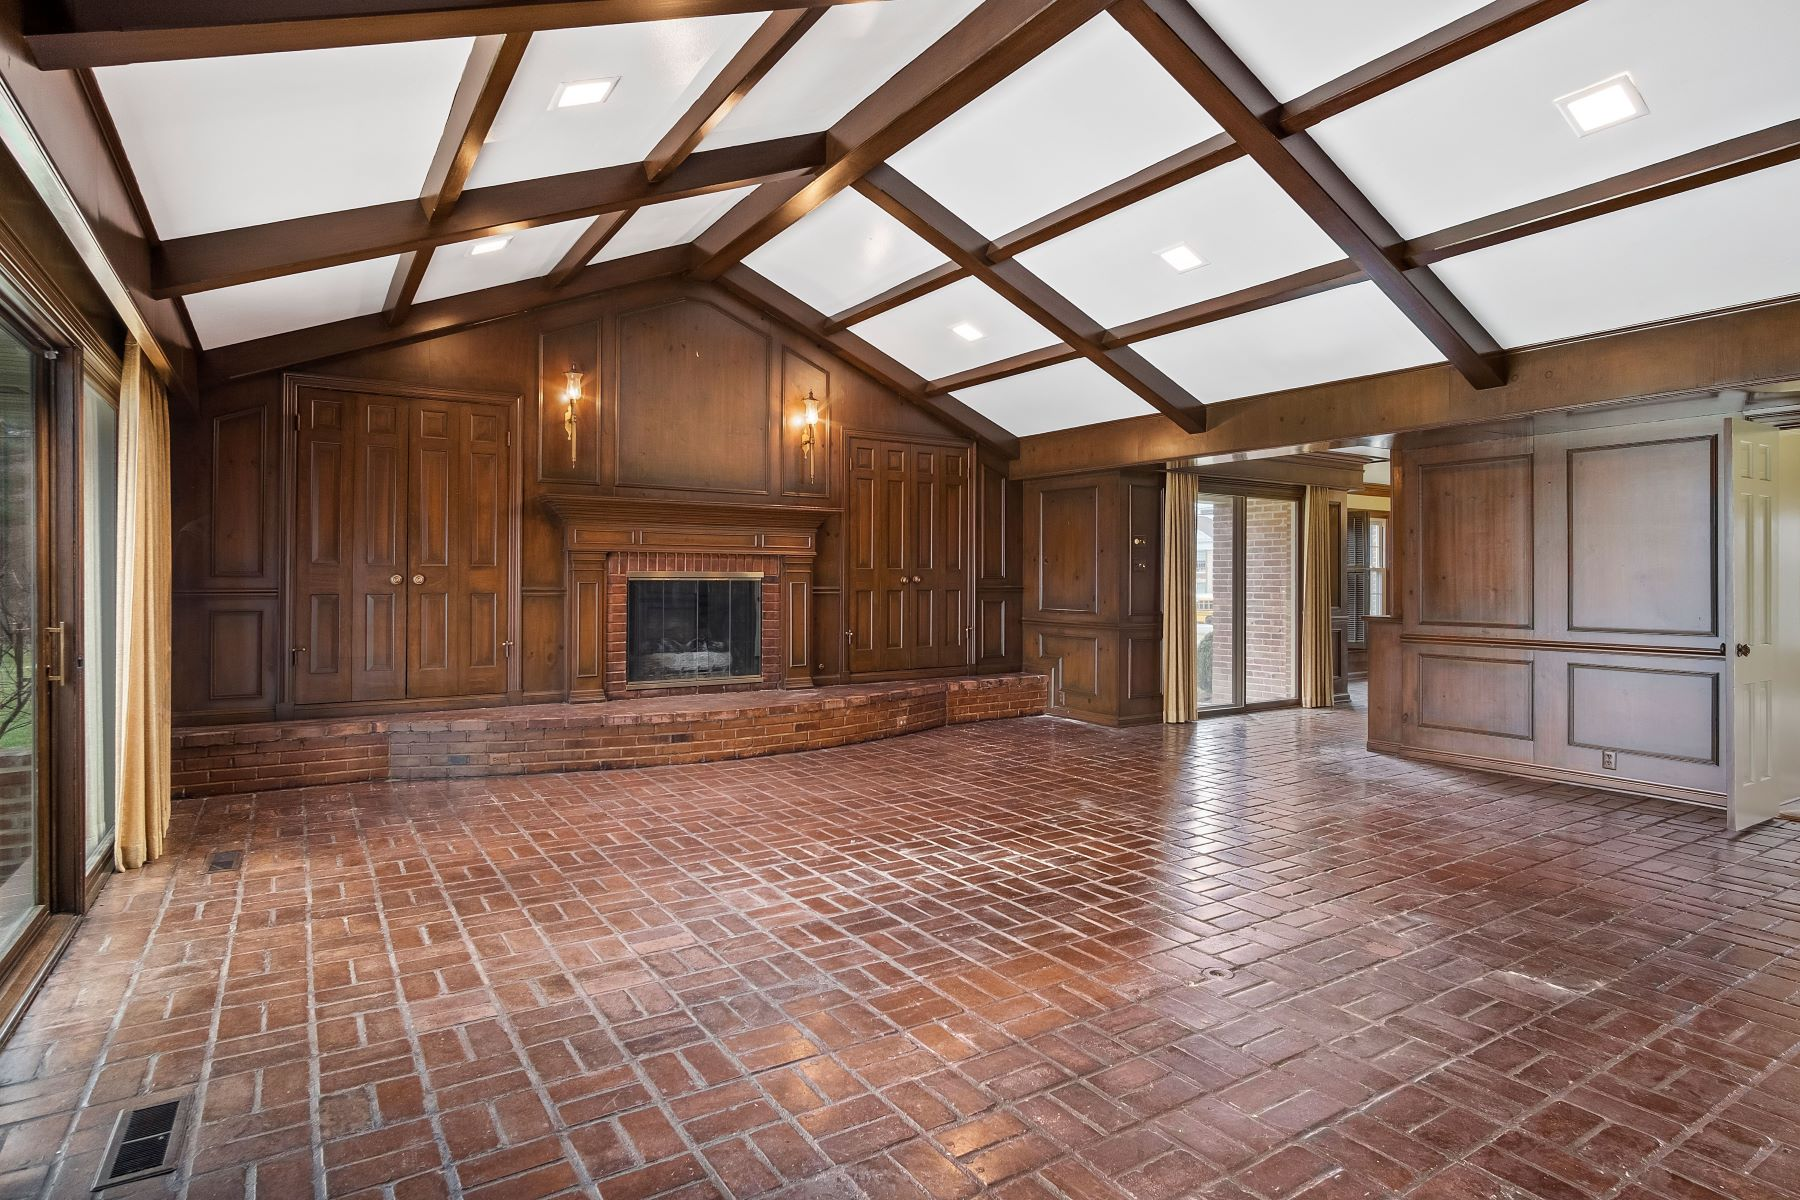 Additional photo for property listing at Incredible Ladue Home 1110 South Warson Road Ladue, Missouri 63124 United States